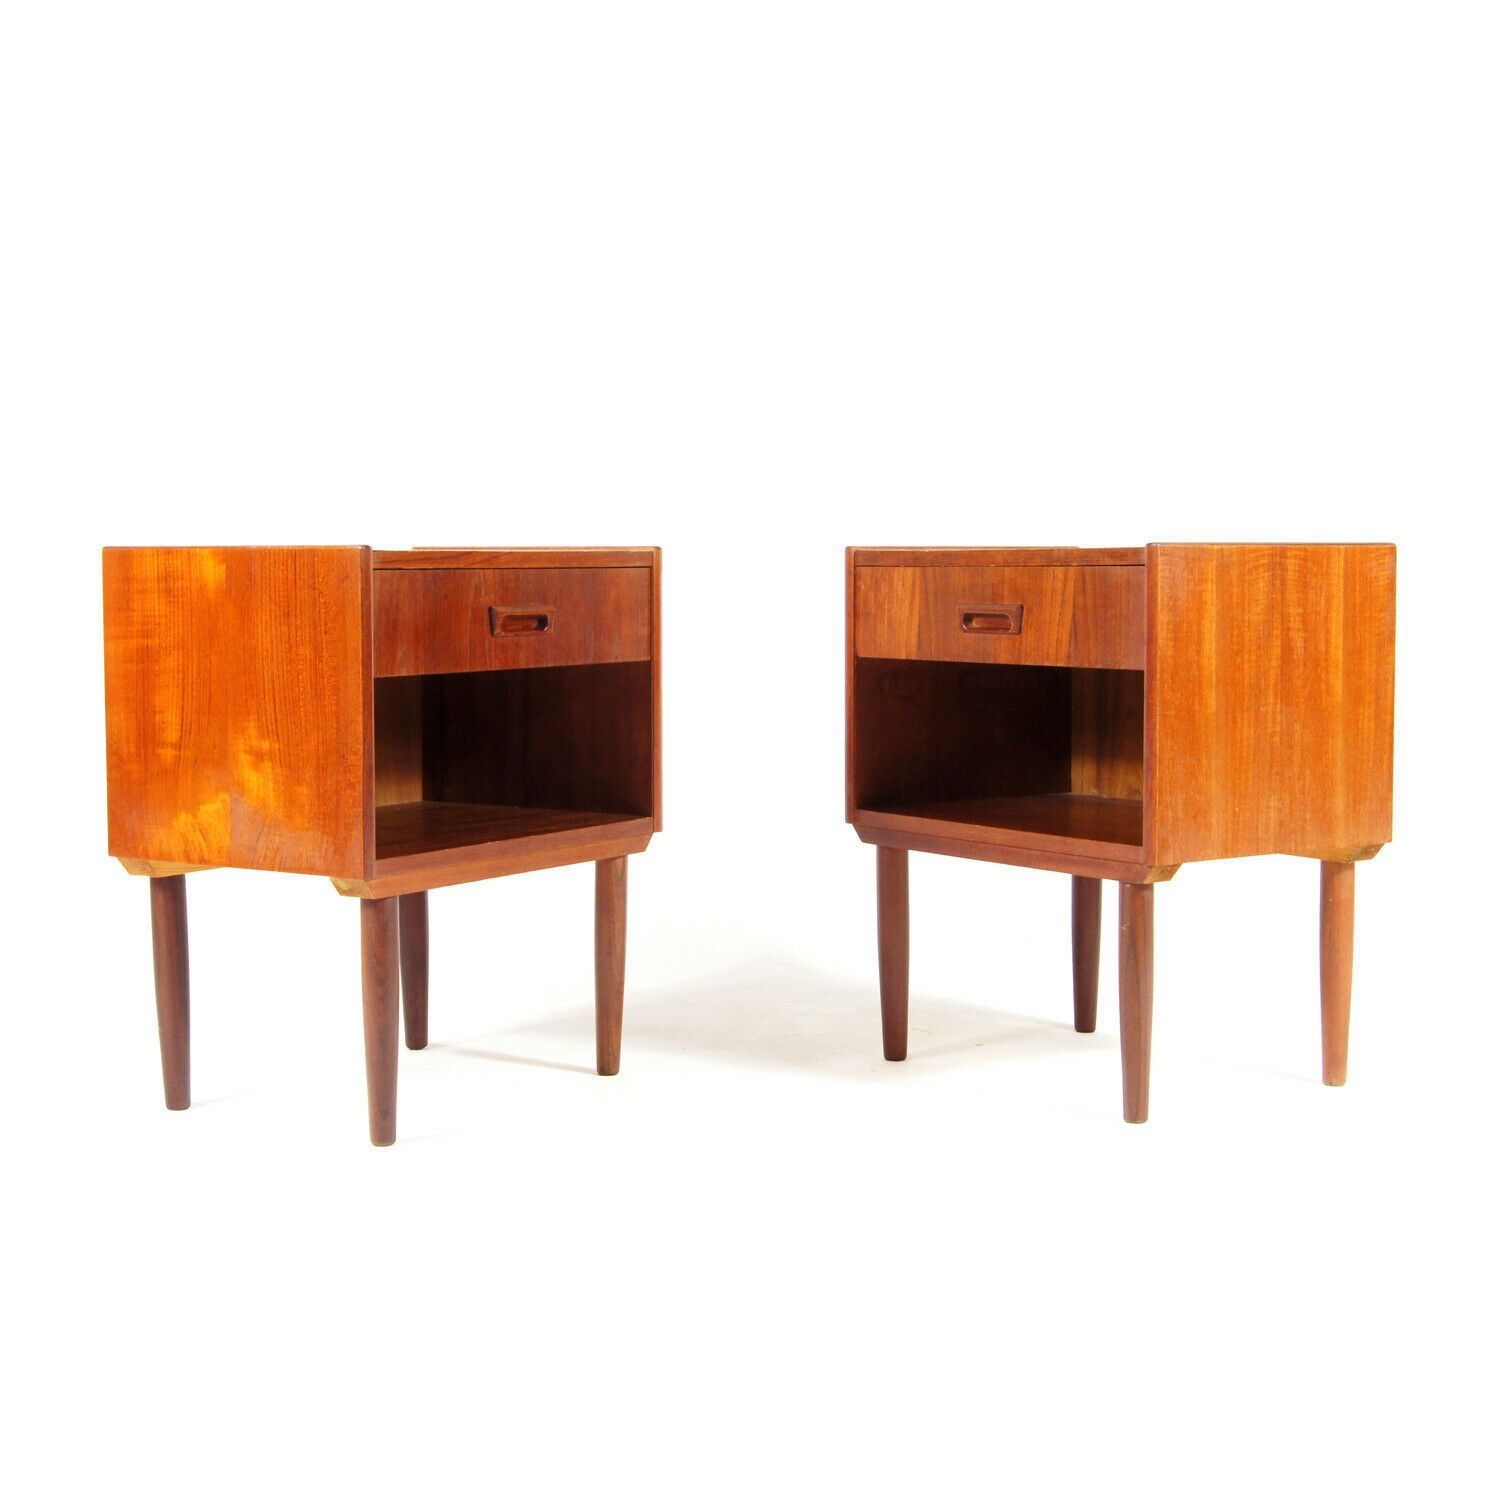 Pair Retro Vintage Danish Design Teak Bedside Tables Cabinets